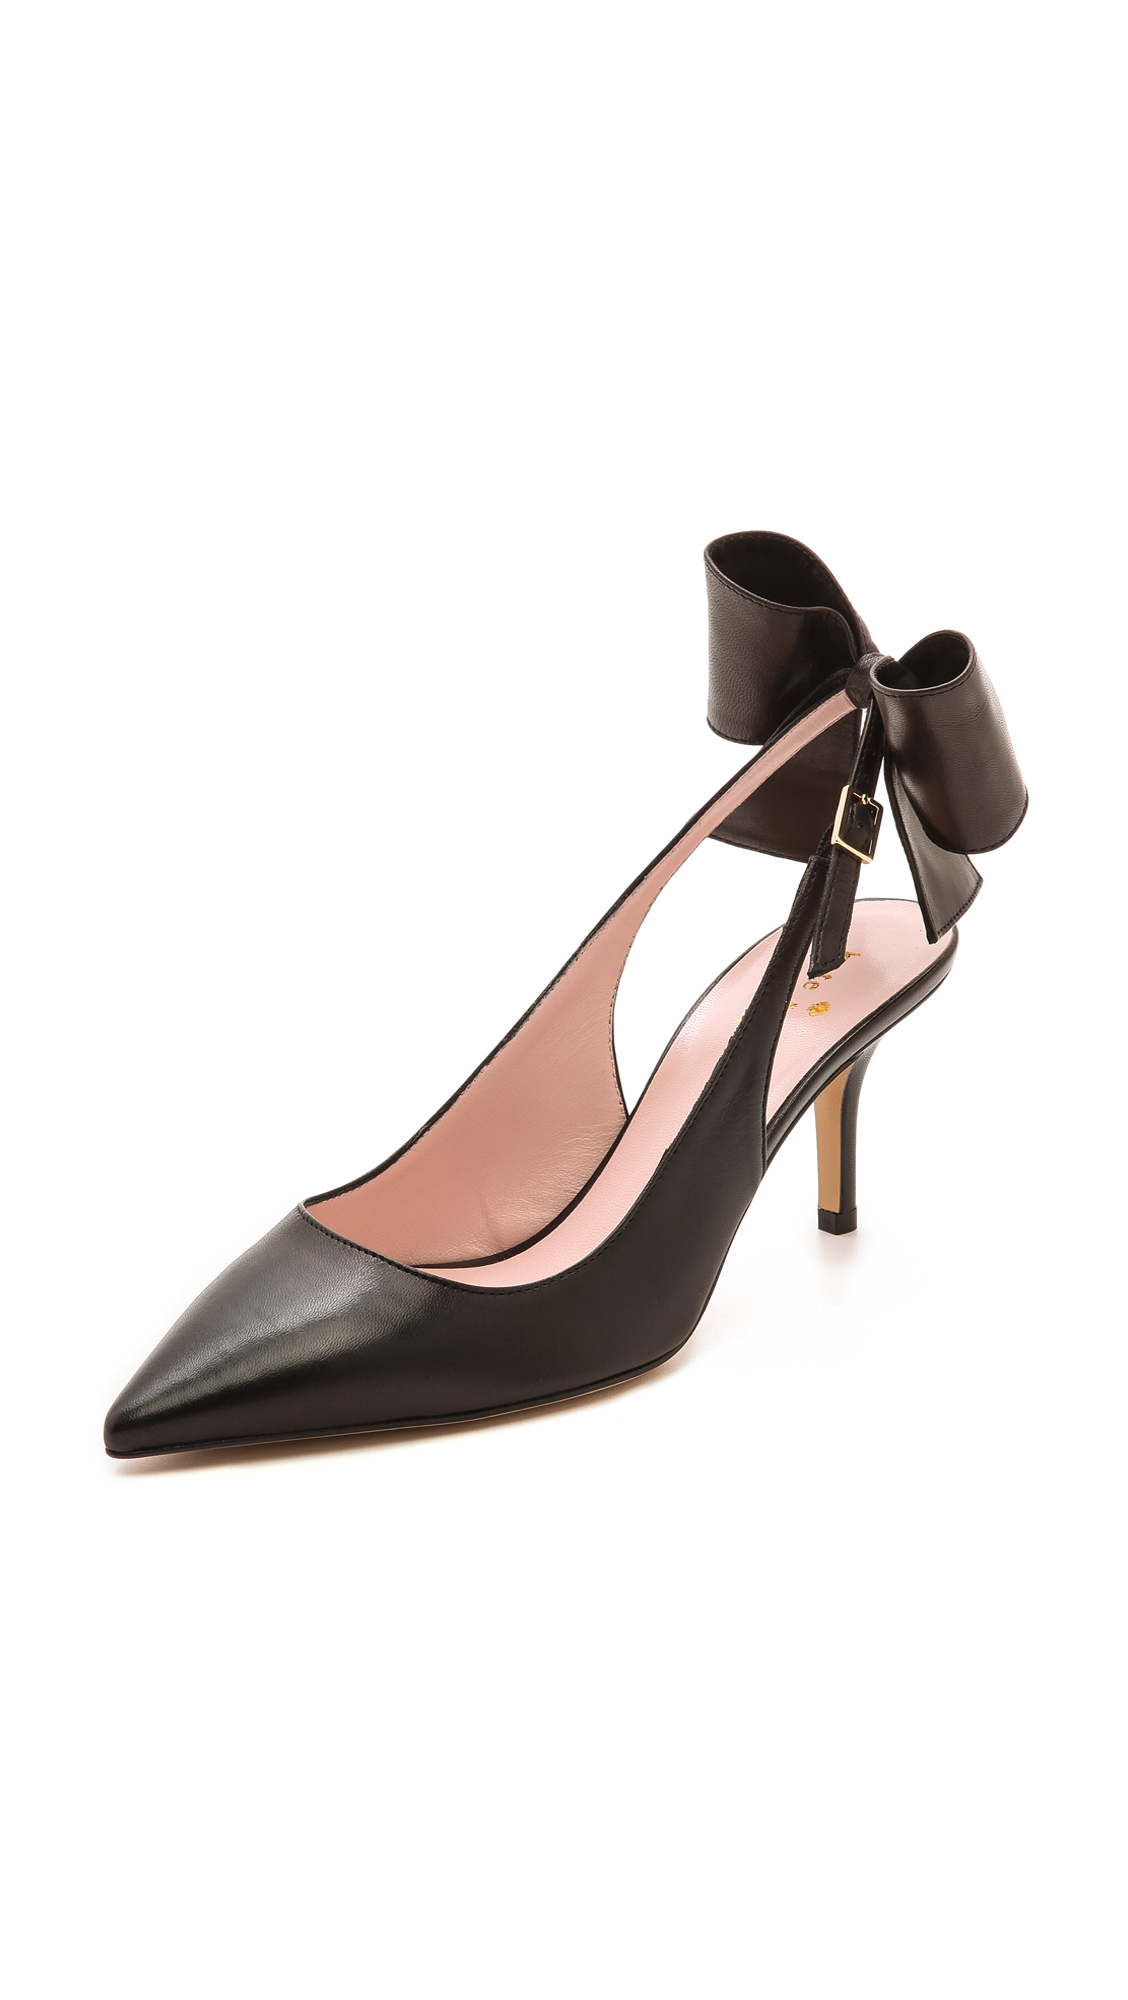 93dfc4acee1 Lyst - Kate Spade Jax Slingback Bow Pumps Black in Black